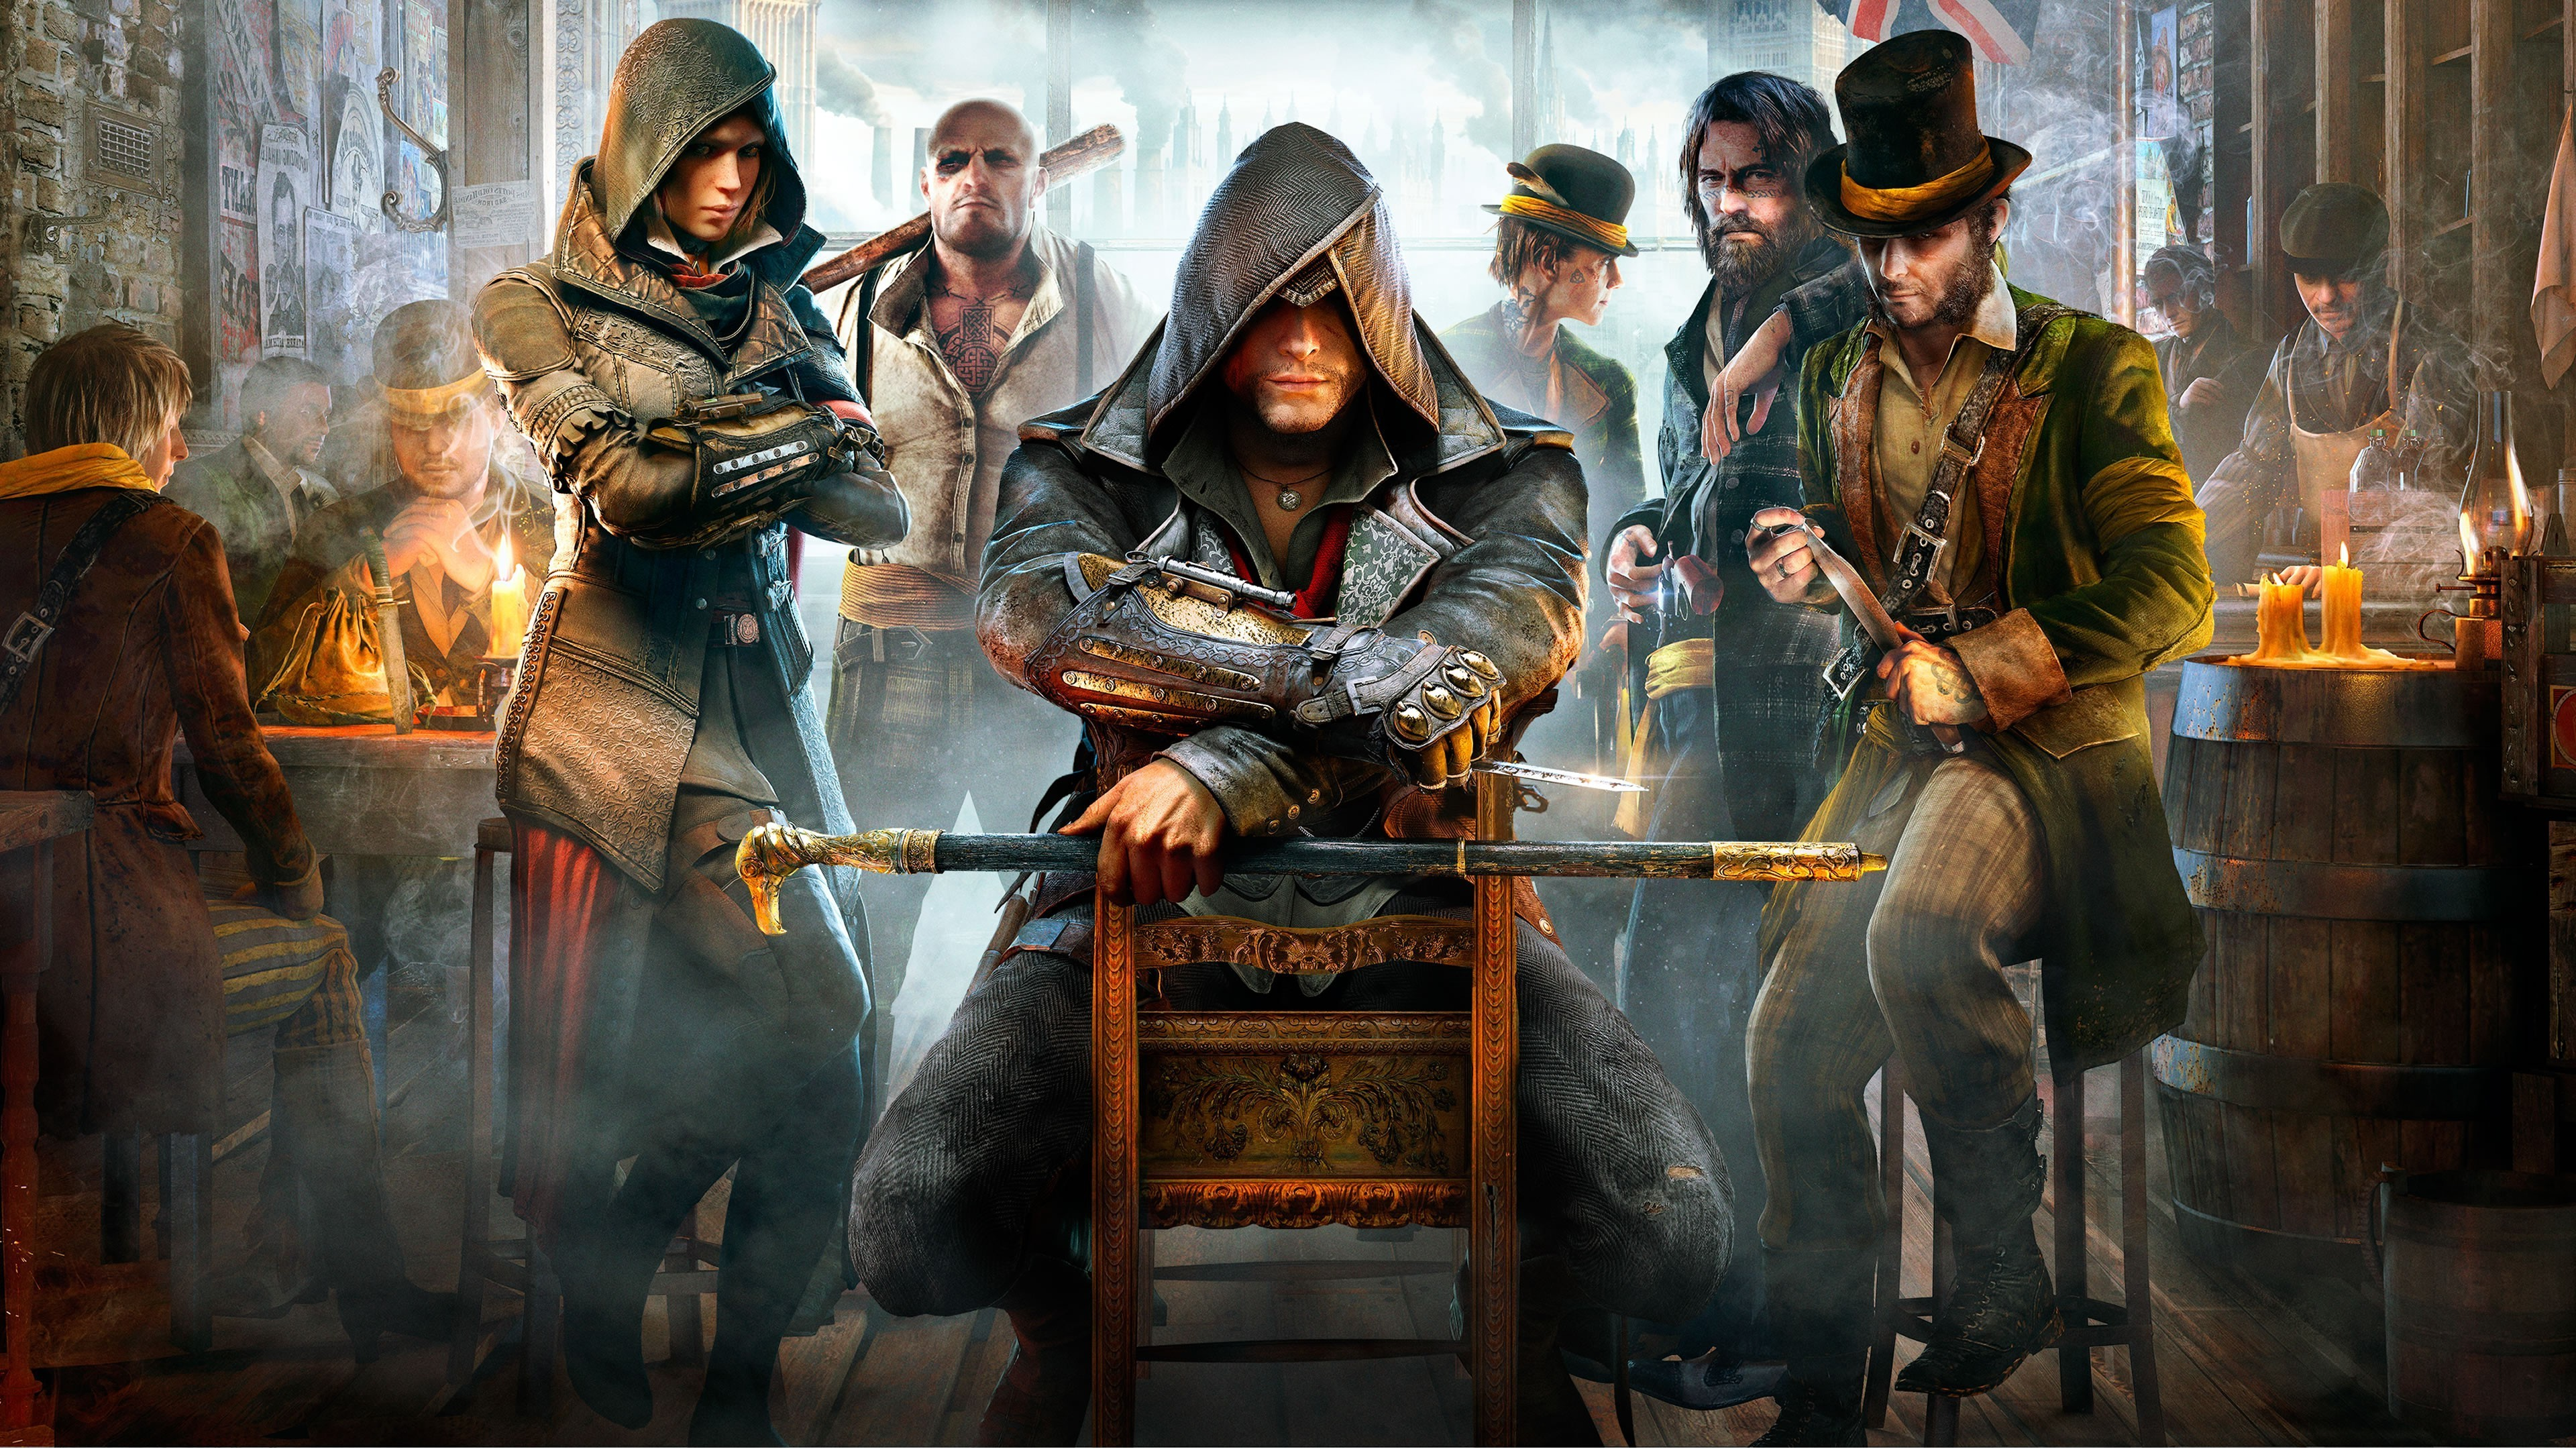 Assassins Creed 2 Hd Games 4k Wallpapers Images Backgrounds Photos And Pictures